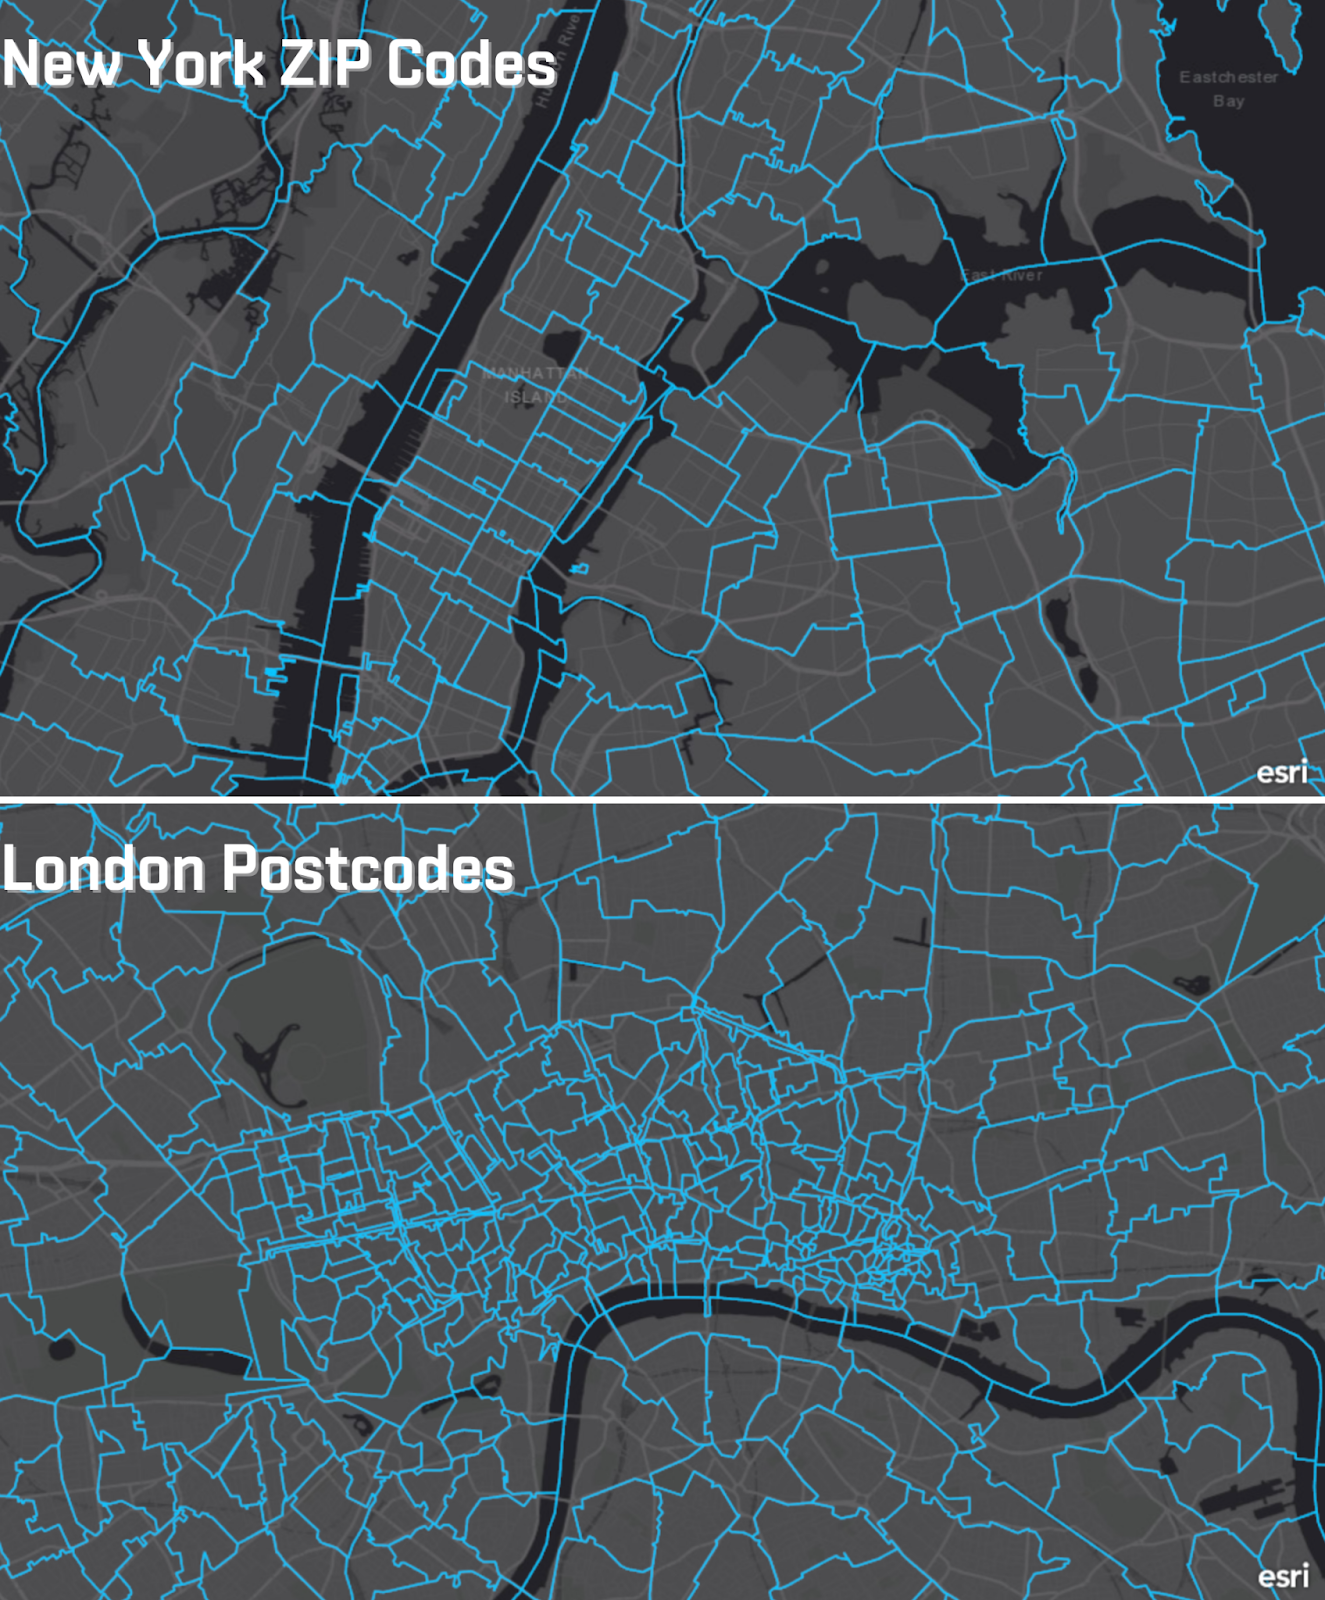 SafeGraph provides geospatial data in the US, UK, and Canada.